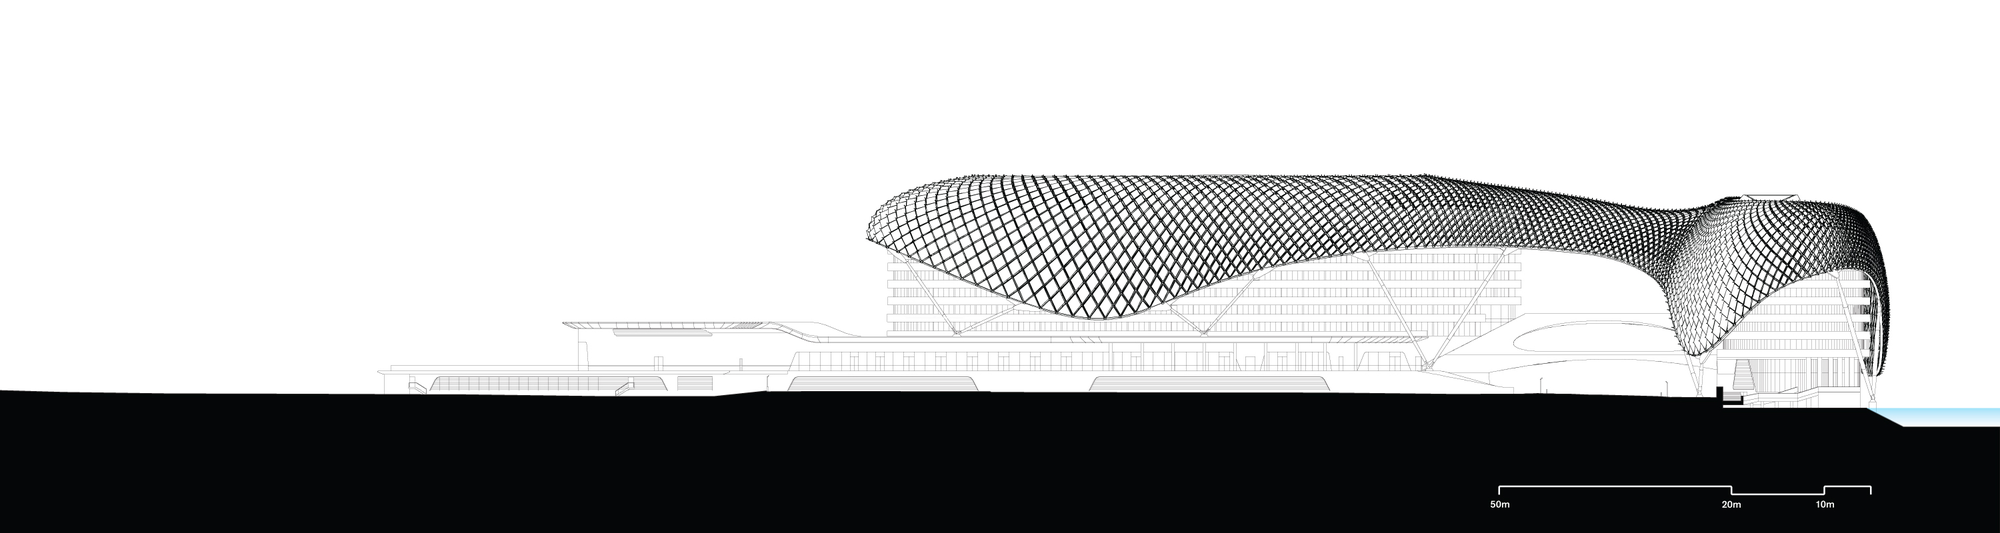 Asymptote Architecture Yas Hotel Of Gallery Of The Yas Hotel Asymptote Architecture 16